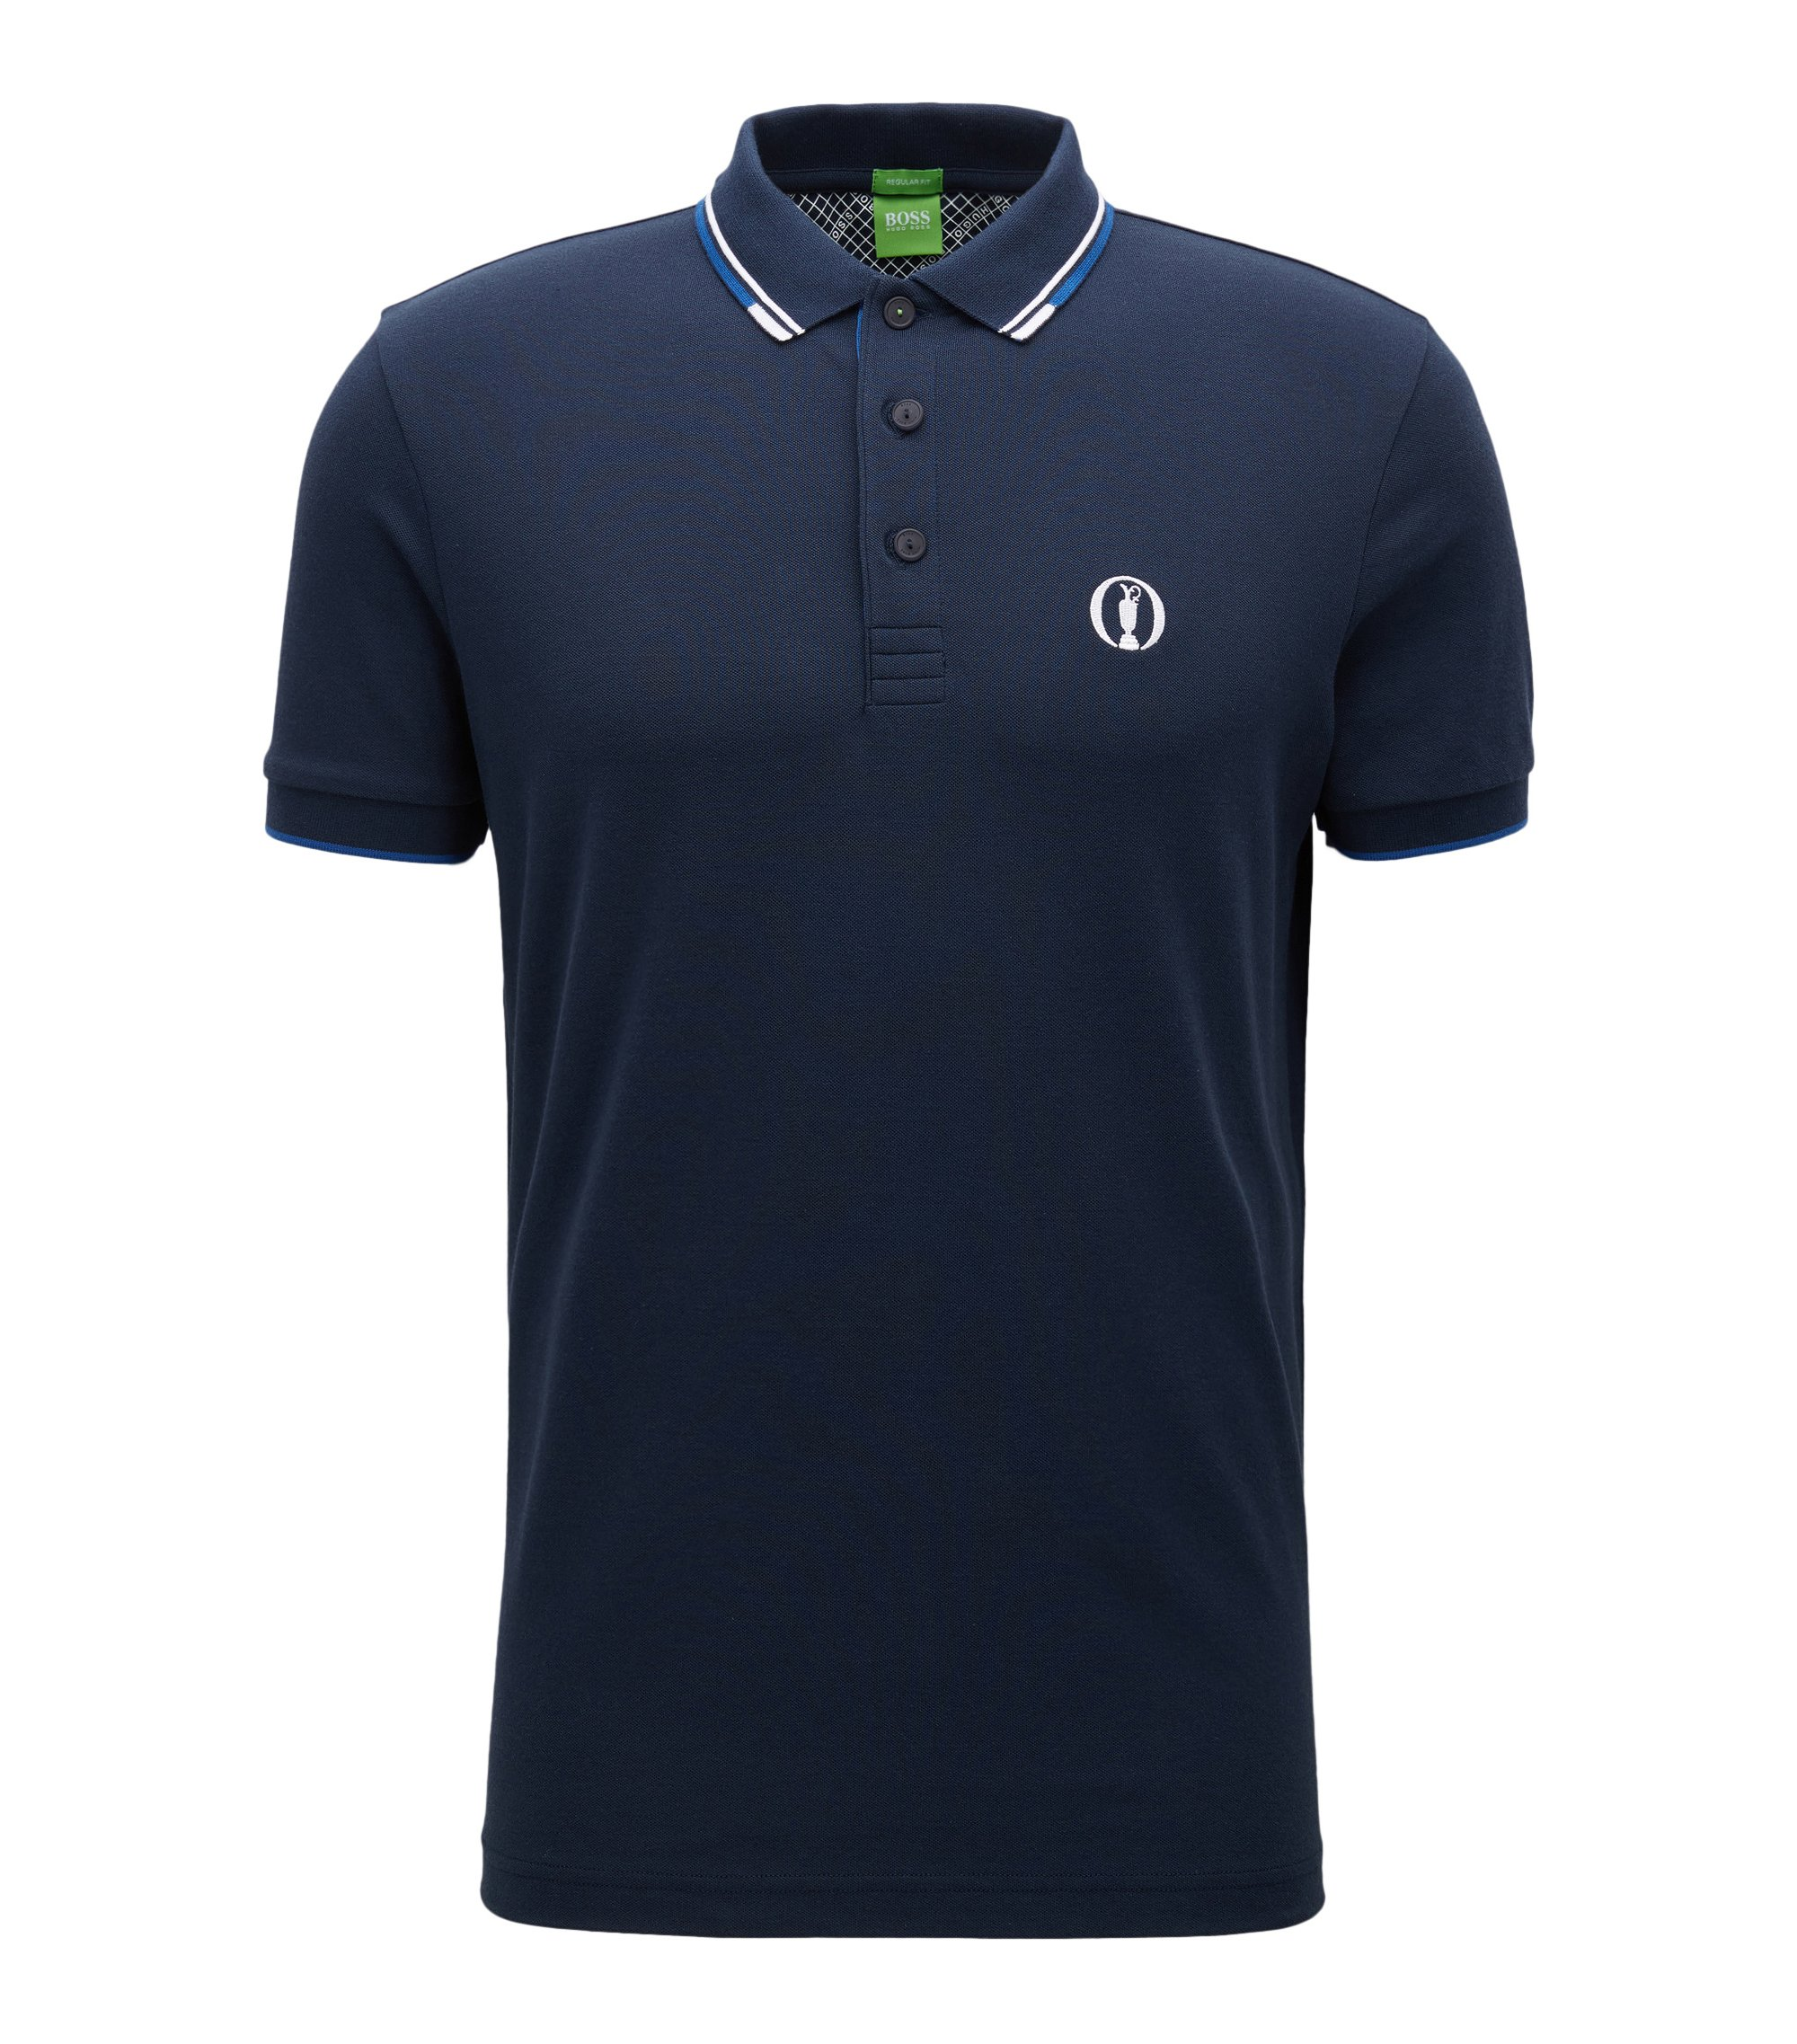 Poloshirt aus Baumwoll-Mix aus The Open Collection, Dunkelblau